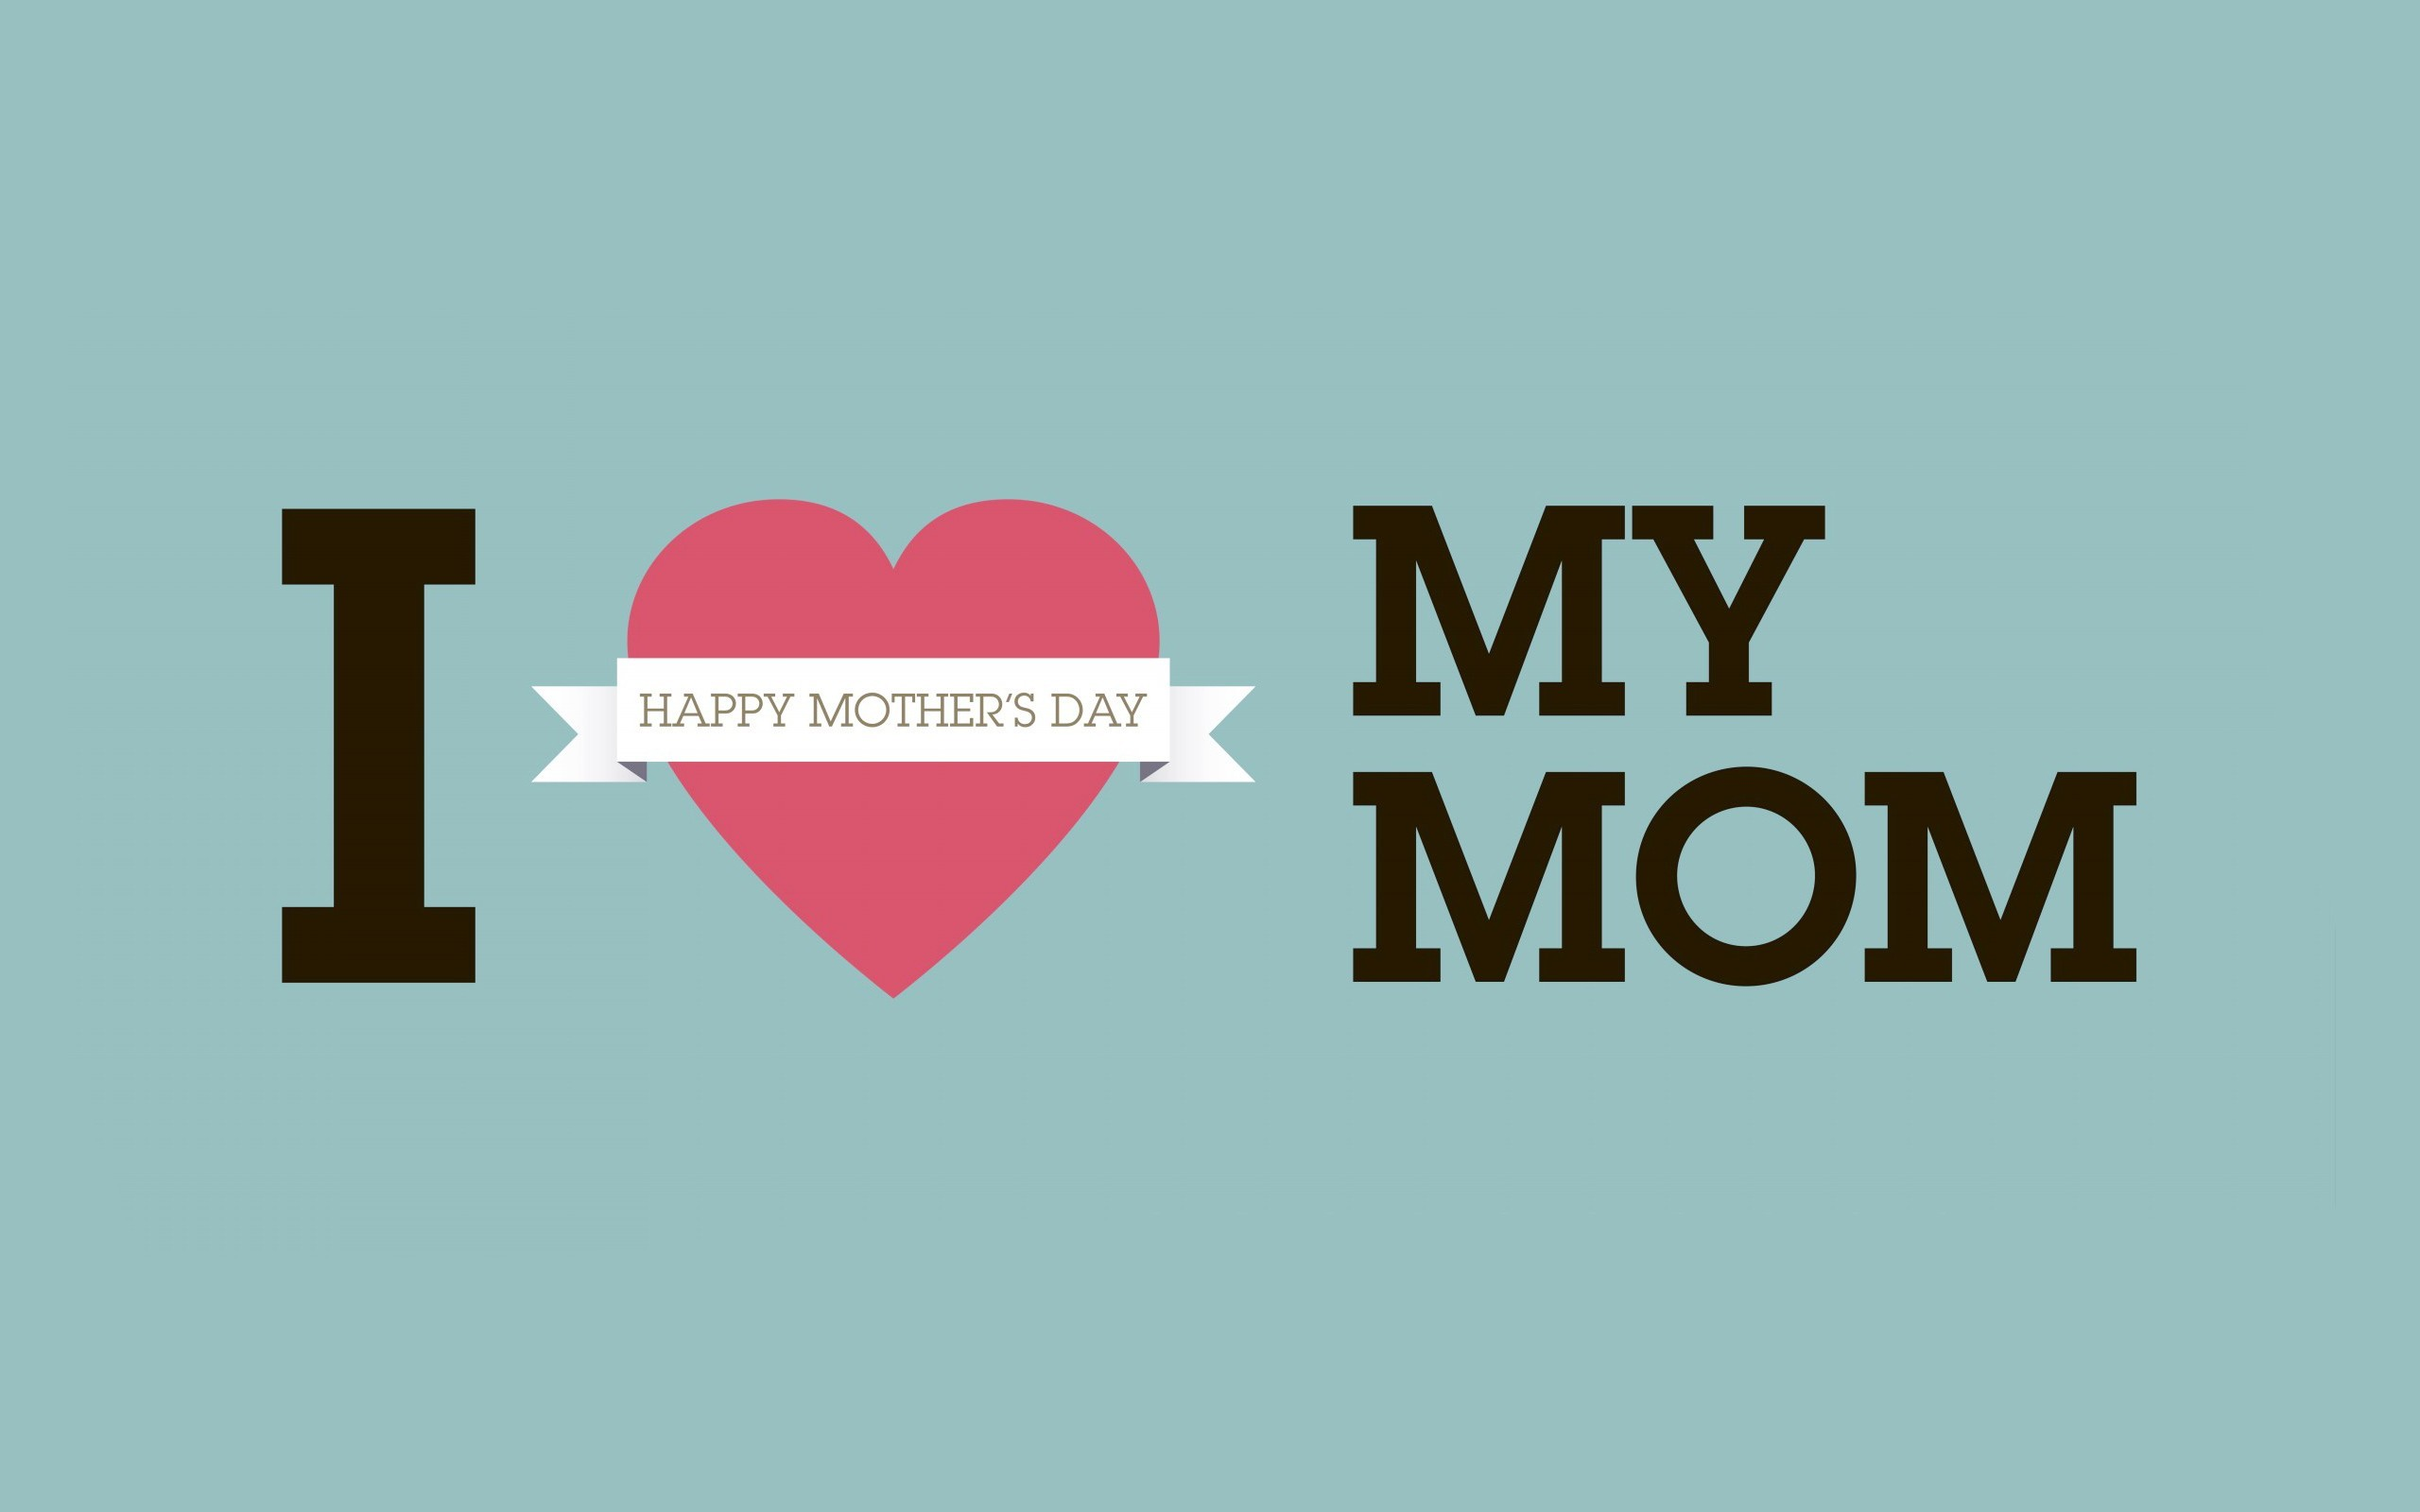 Love You Mom Wallpaper Desktop : I Love You Mom Wallpaper (61+ images)